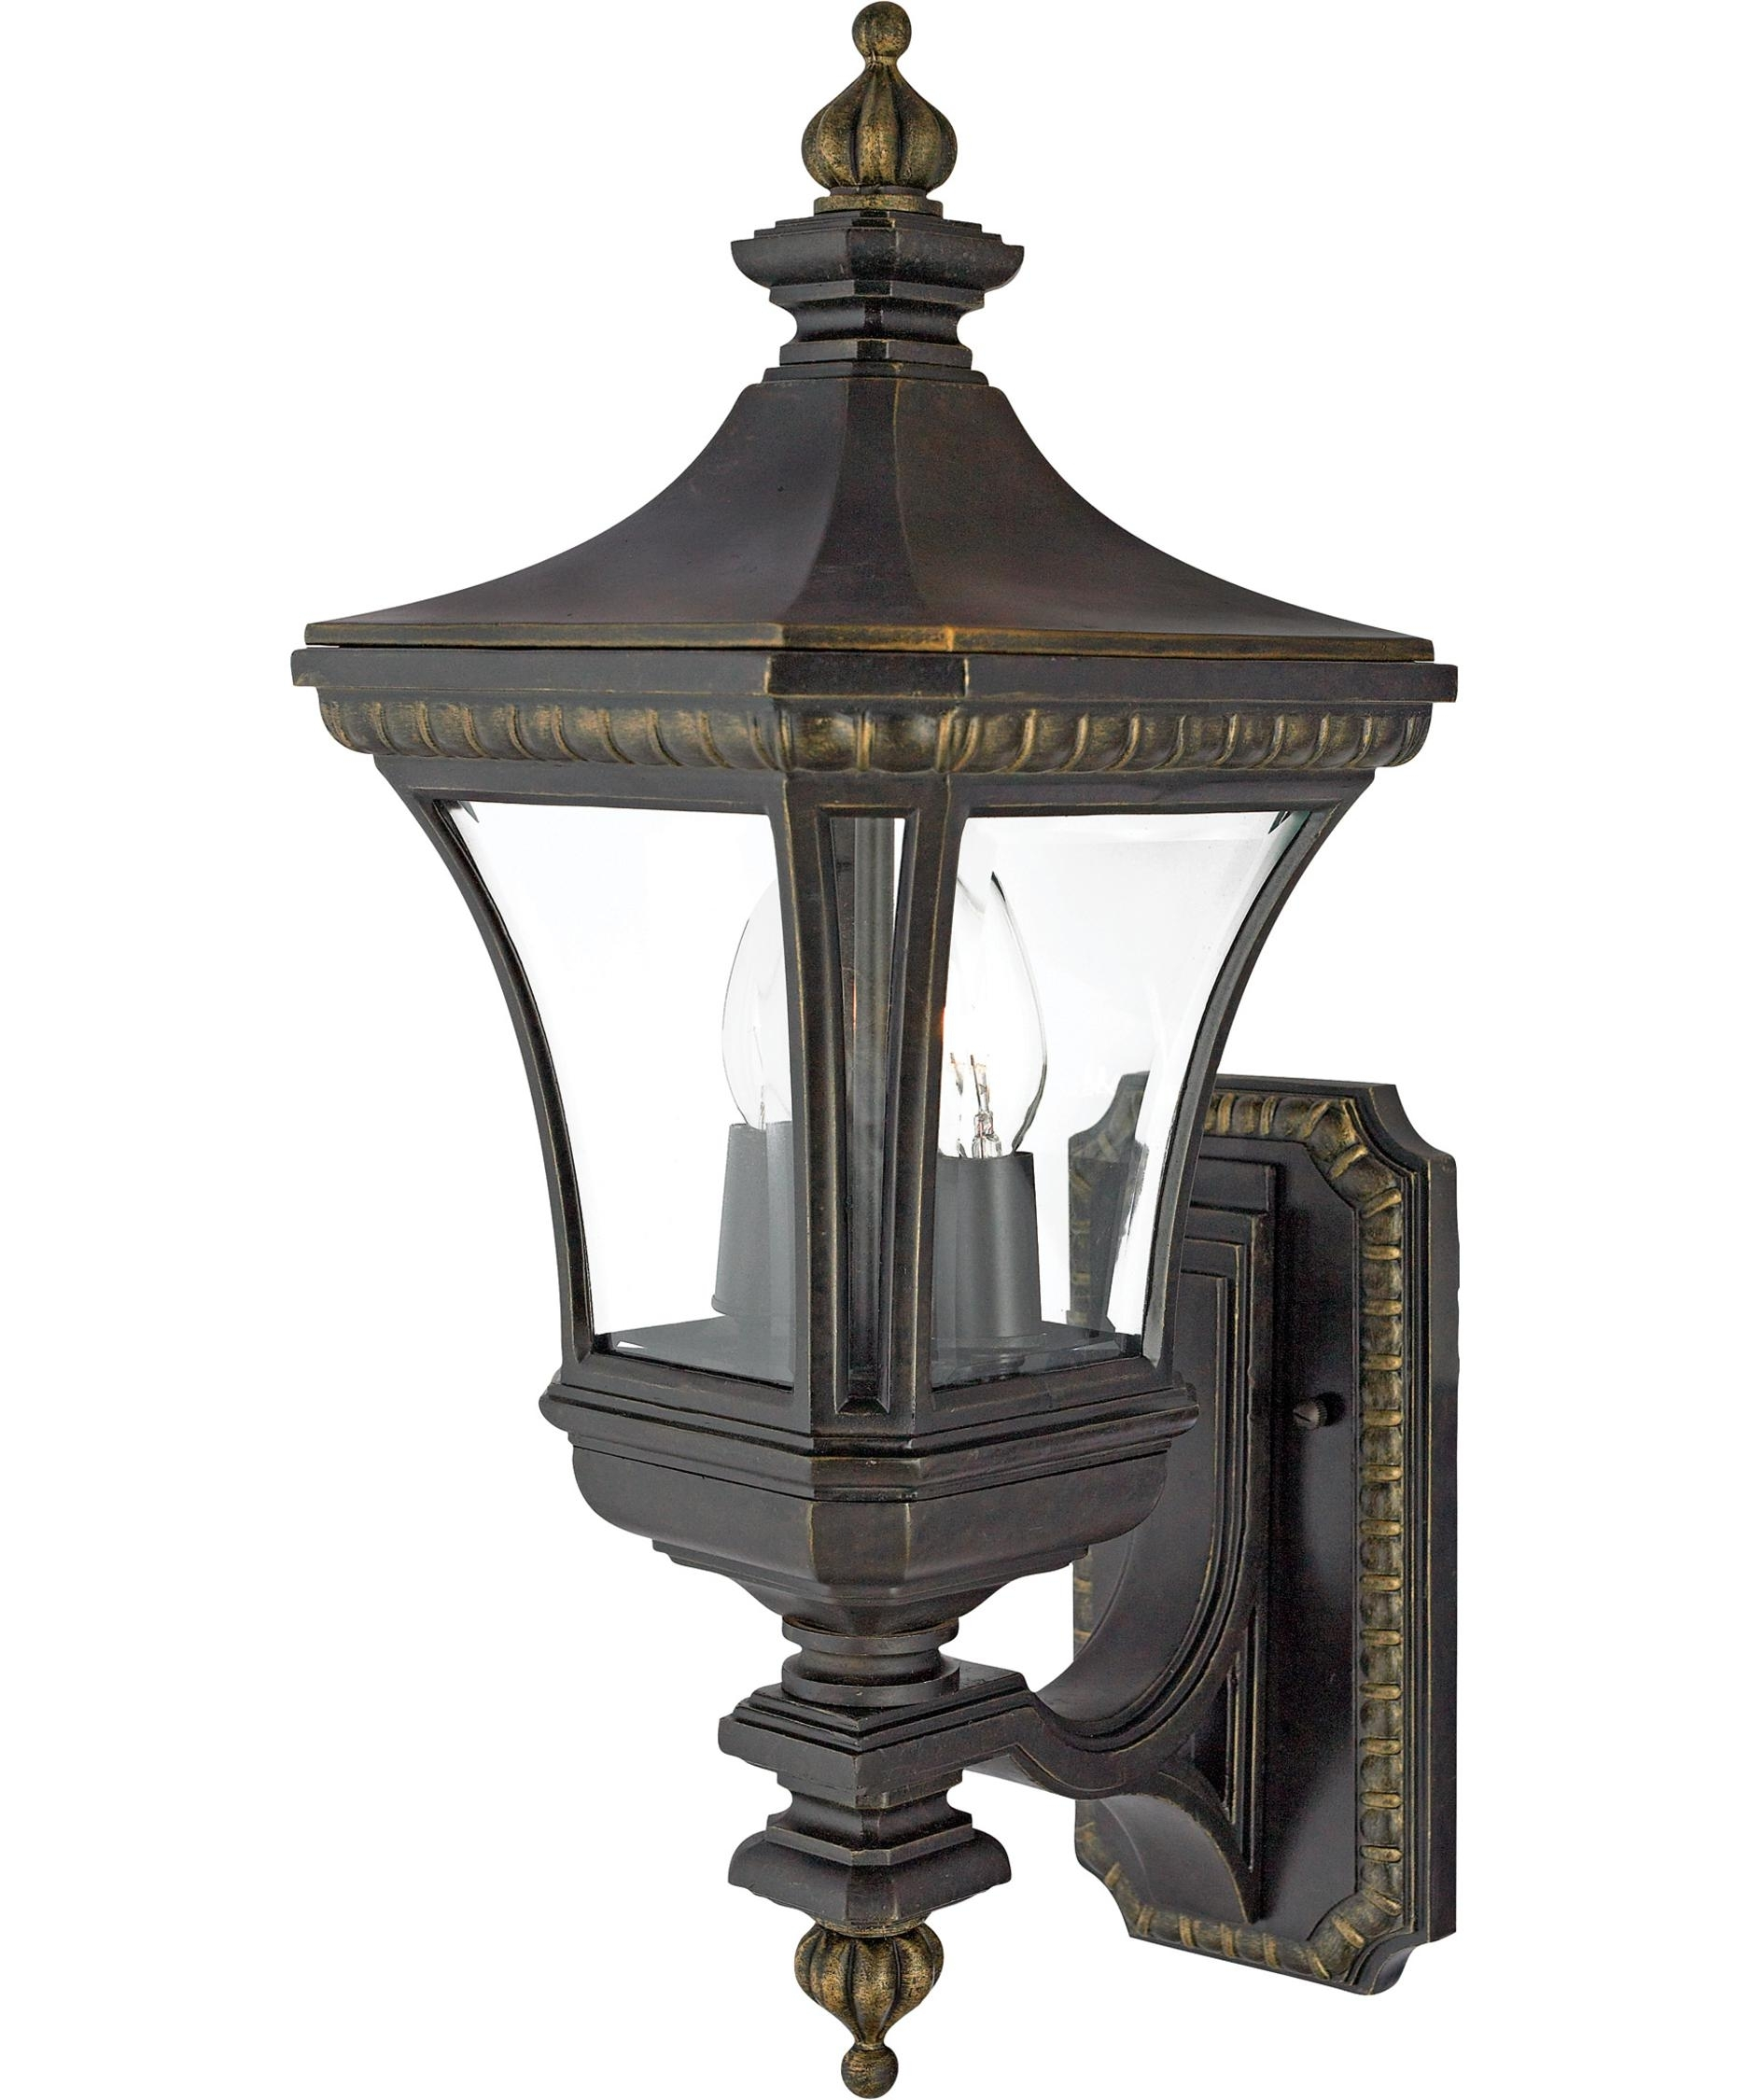 Inspiration about Quoizel De8959 Devon 9 Inch Wide 2 Light Outdoor Wall Light Inside Victorian Outdoor Wall Lighting (#11 of 15)